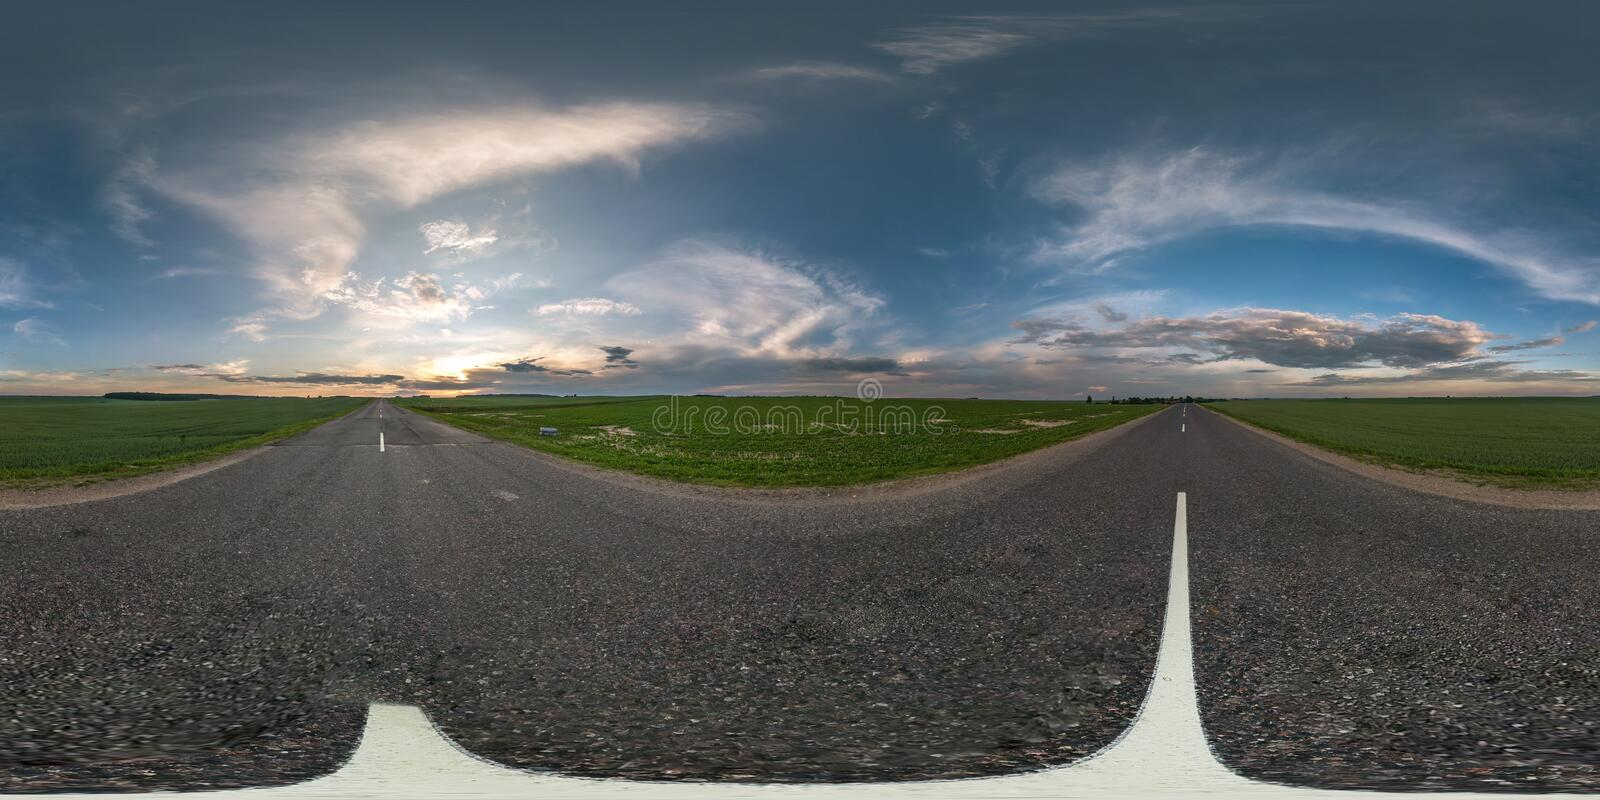 Seamless spherical hdri panorama 360 degrees angle view on asphalt road among fields in summer evening sunset with awesome clouds. In equirectangular projection stock images